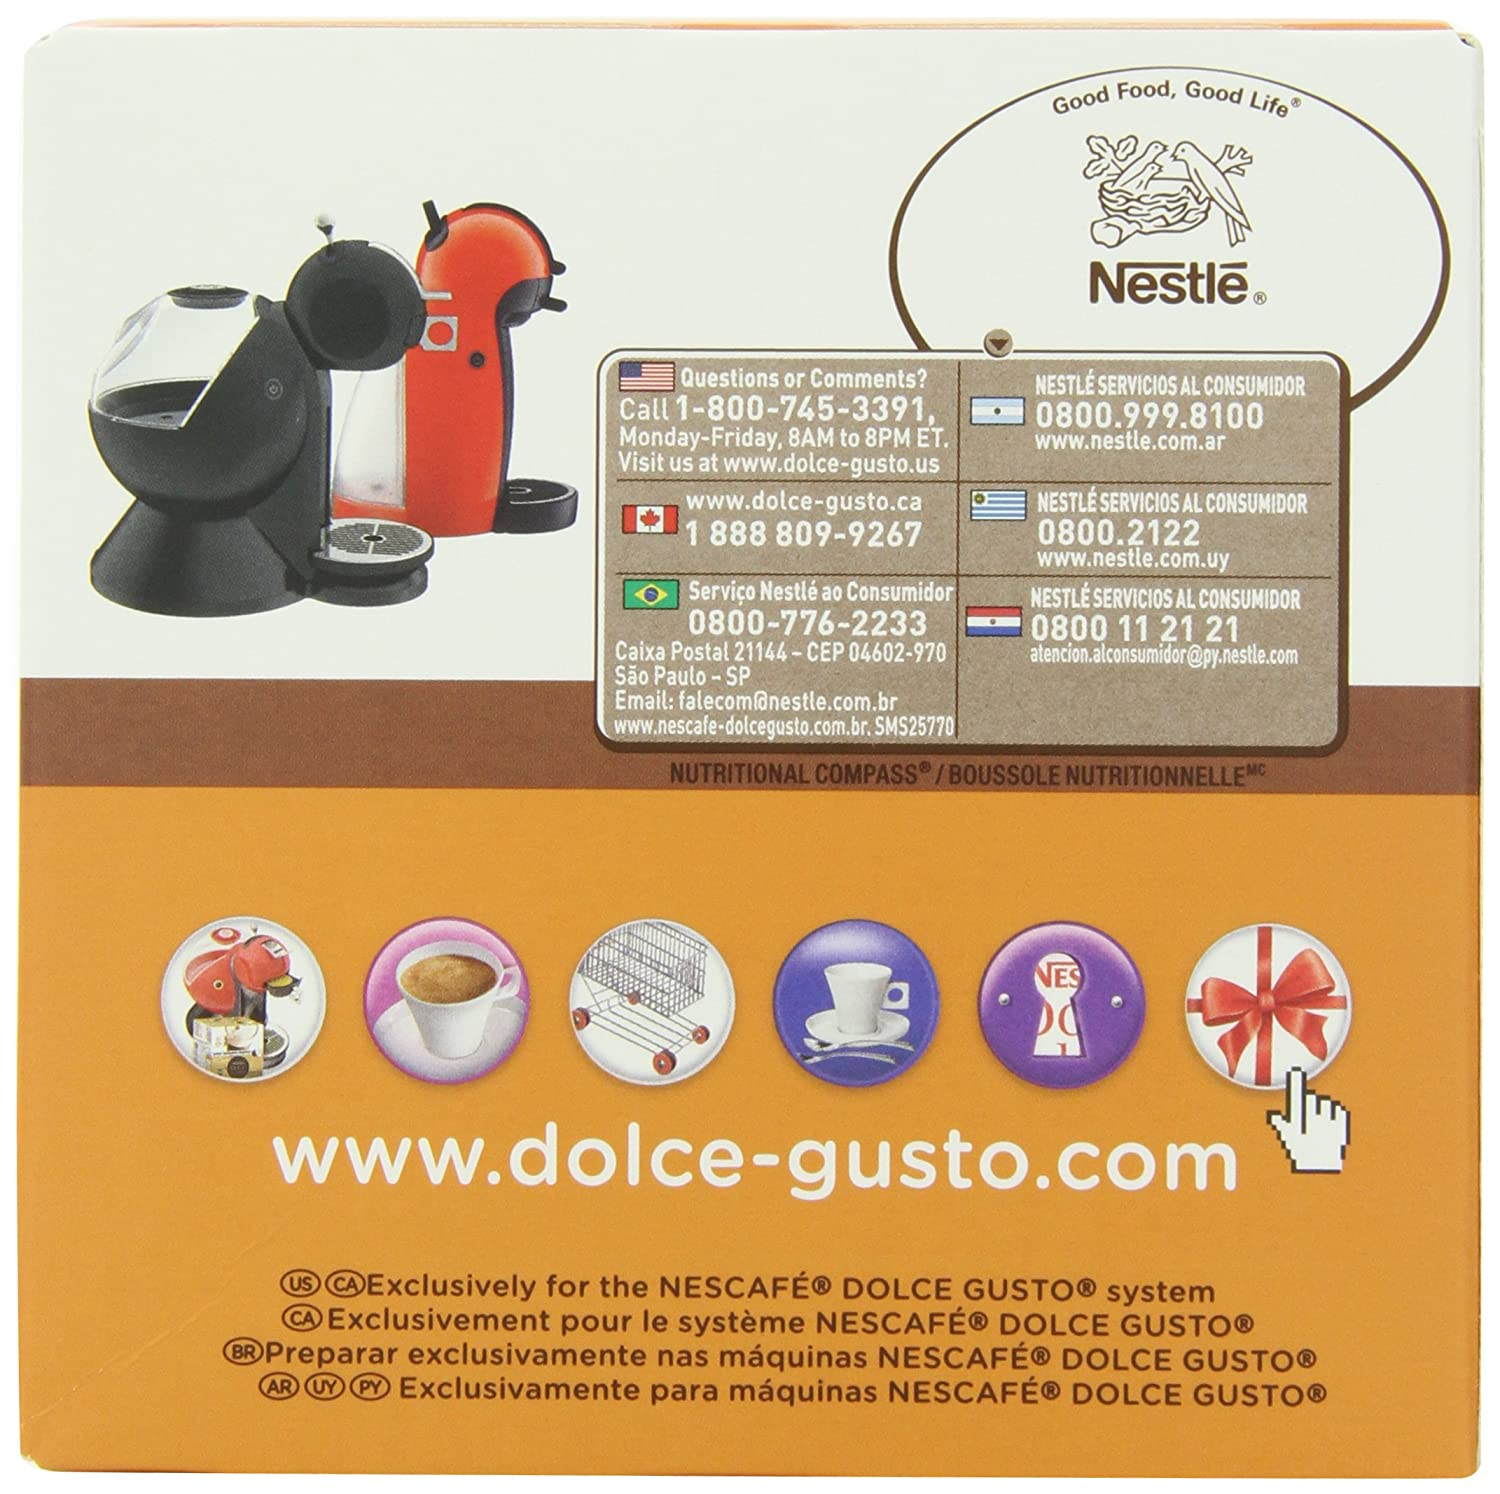 Amazon.com : NESCAFÉ Dolce Gusto Capsules - MEDIUM ROAST, 16 Pods : Grocery & Gourmet Food